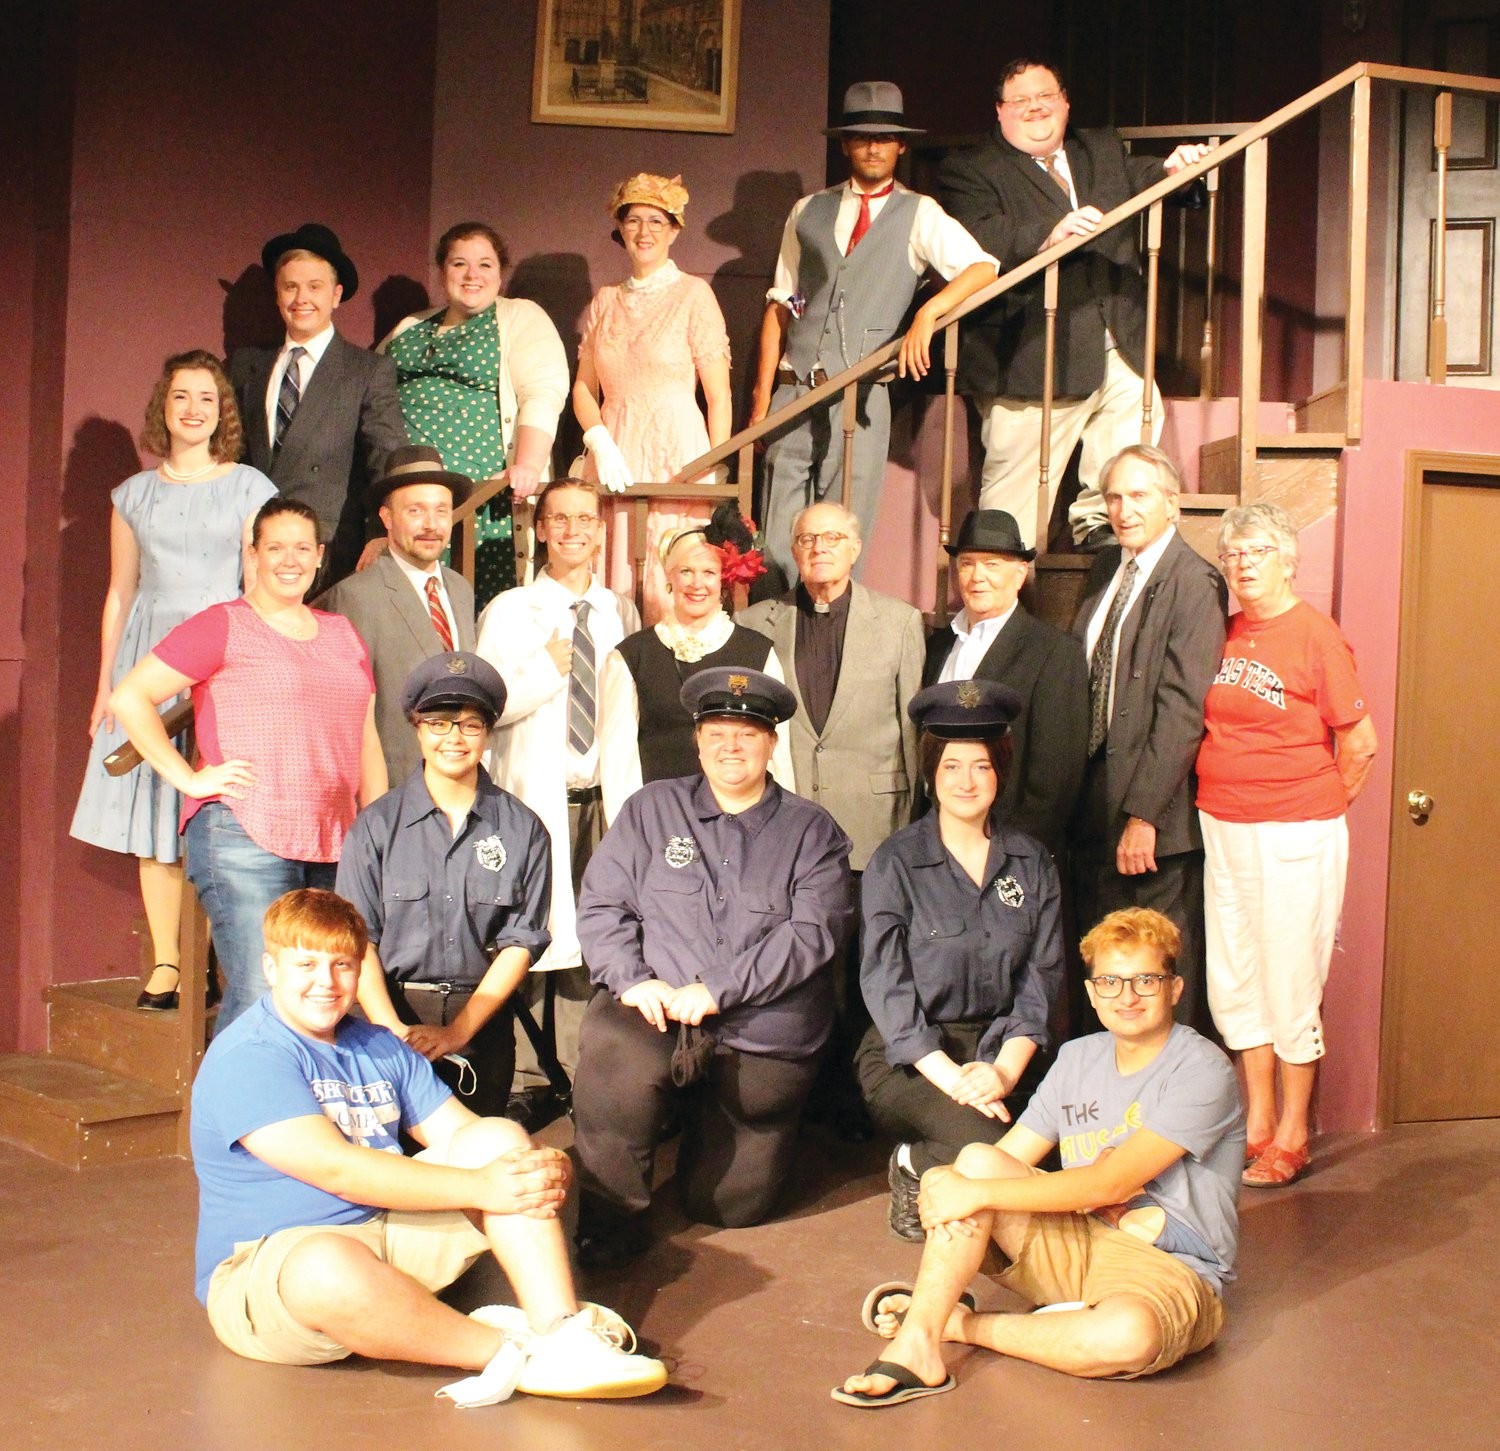 Members of the cast for Arsenic and Old Lace, are, from left, front row, Harmon Hann and Ross Tunin (both techs); second row, Alecsandra Baldwin (Officer Brophy), Lora Burris (Officer O'Hara), Nicole Hays (Officer Klein); third row, Katie Melvin (director), Adrian Burris (Mr. Gibbs), Alan Hobson (Dr. Einstein), Carol Homann (Mrs. Harper), Kurt Homann (Rev Dr. Harper), Kenn Clark (Mr. Witherspoon), Keith Strain (Lt. Rooney), Betsy Strain (producer); and on the stairs, Michaela Semak (Elaine Harper), Mike Melvin (Mortimer Brewster), Mary Taylor (Abby Brewster), Cheri Clark (Martha Brewster), Isaac Bacon (Jonathan Brewster) and Dan Martin (Teddy Brewster).